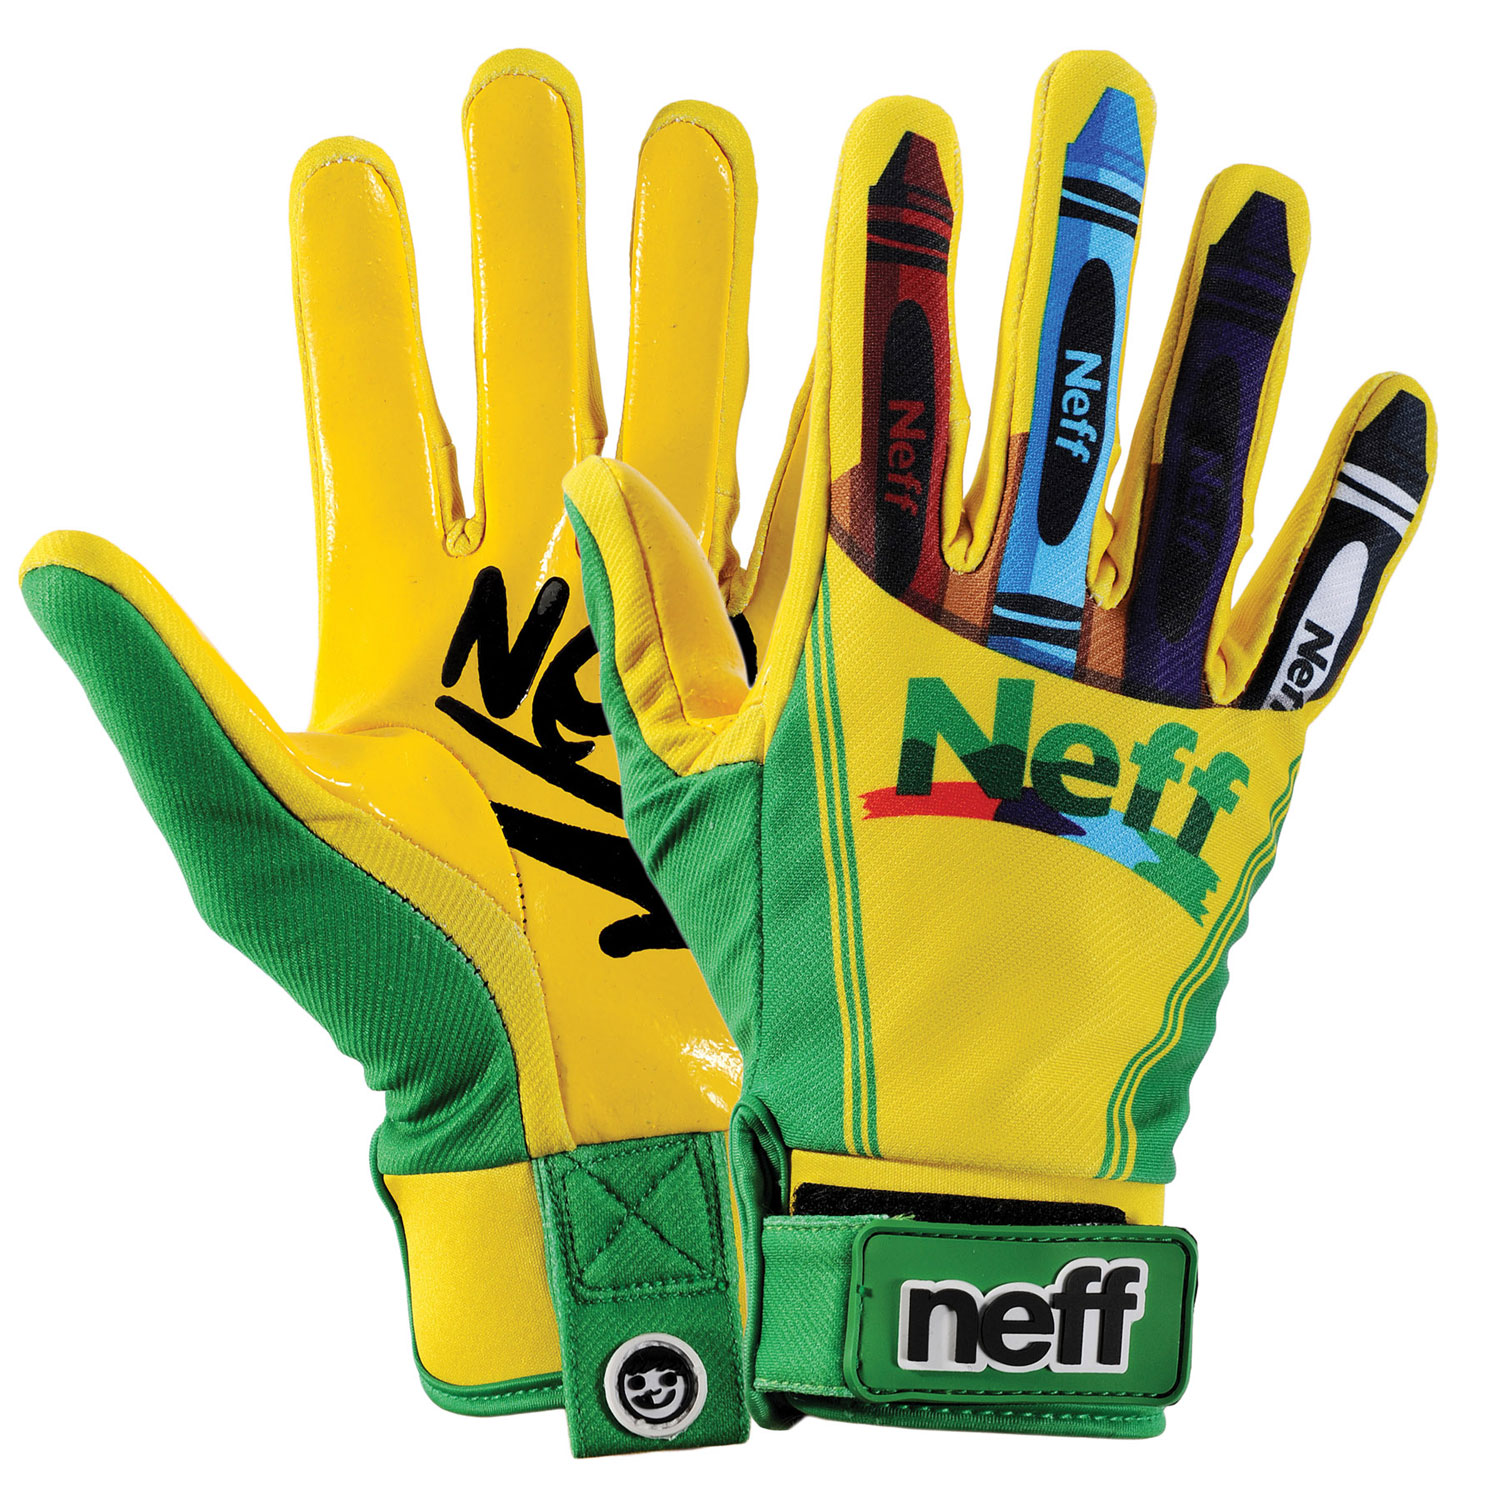 Snowboard Key Features of the Neff Chameleon Gloves: Stretch poly twill 2x PU coated chassis Synthetic leather palm with no slip grip silicon print Neoprene wrist with TPR hook and loop wrist closure Palmside pull tab Pre-curve finger geometry - $29.95